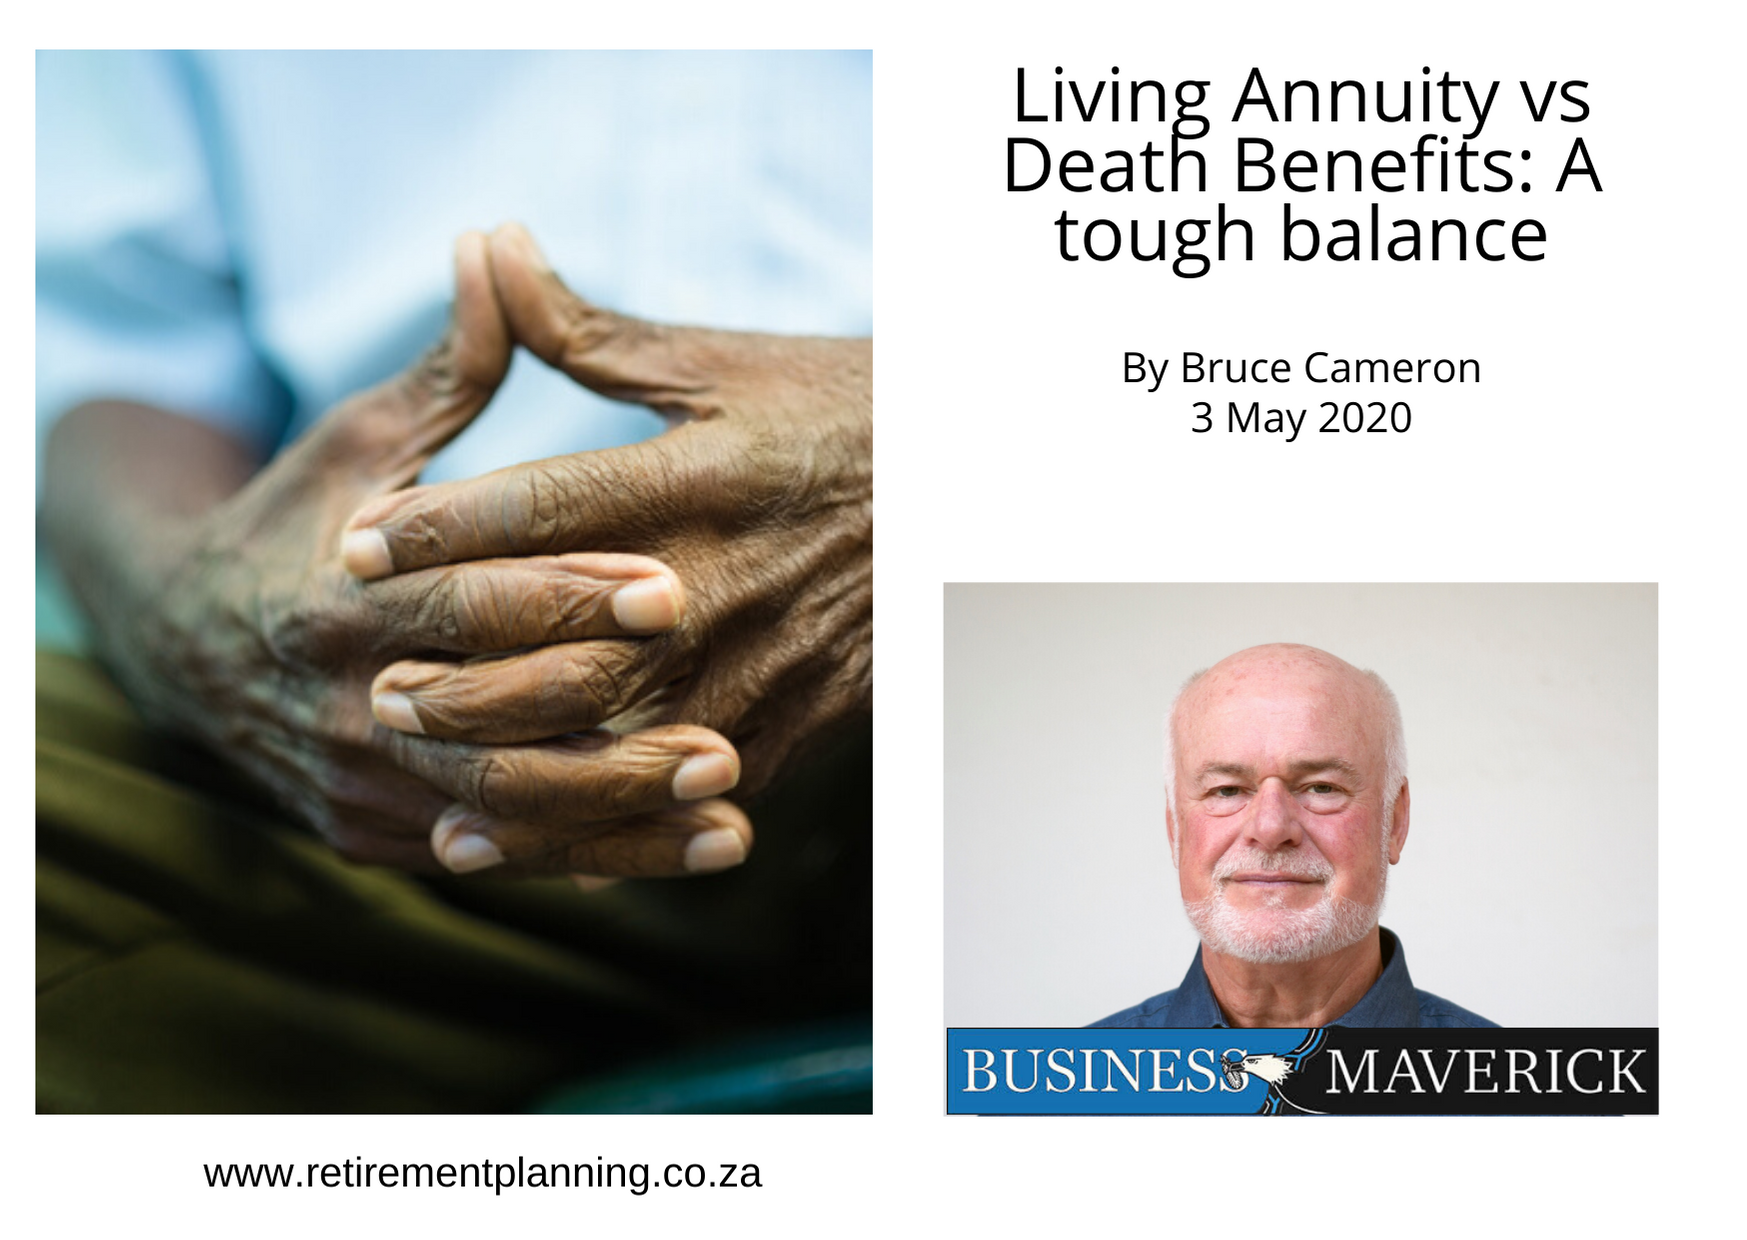 Bruce Cameron Living Annuity vs Death Benefits A tough balance By Bruce Cameron 03052020